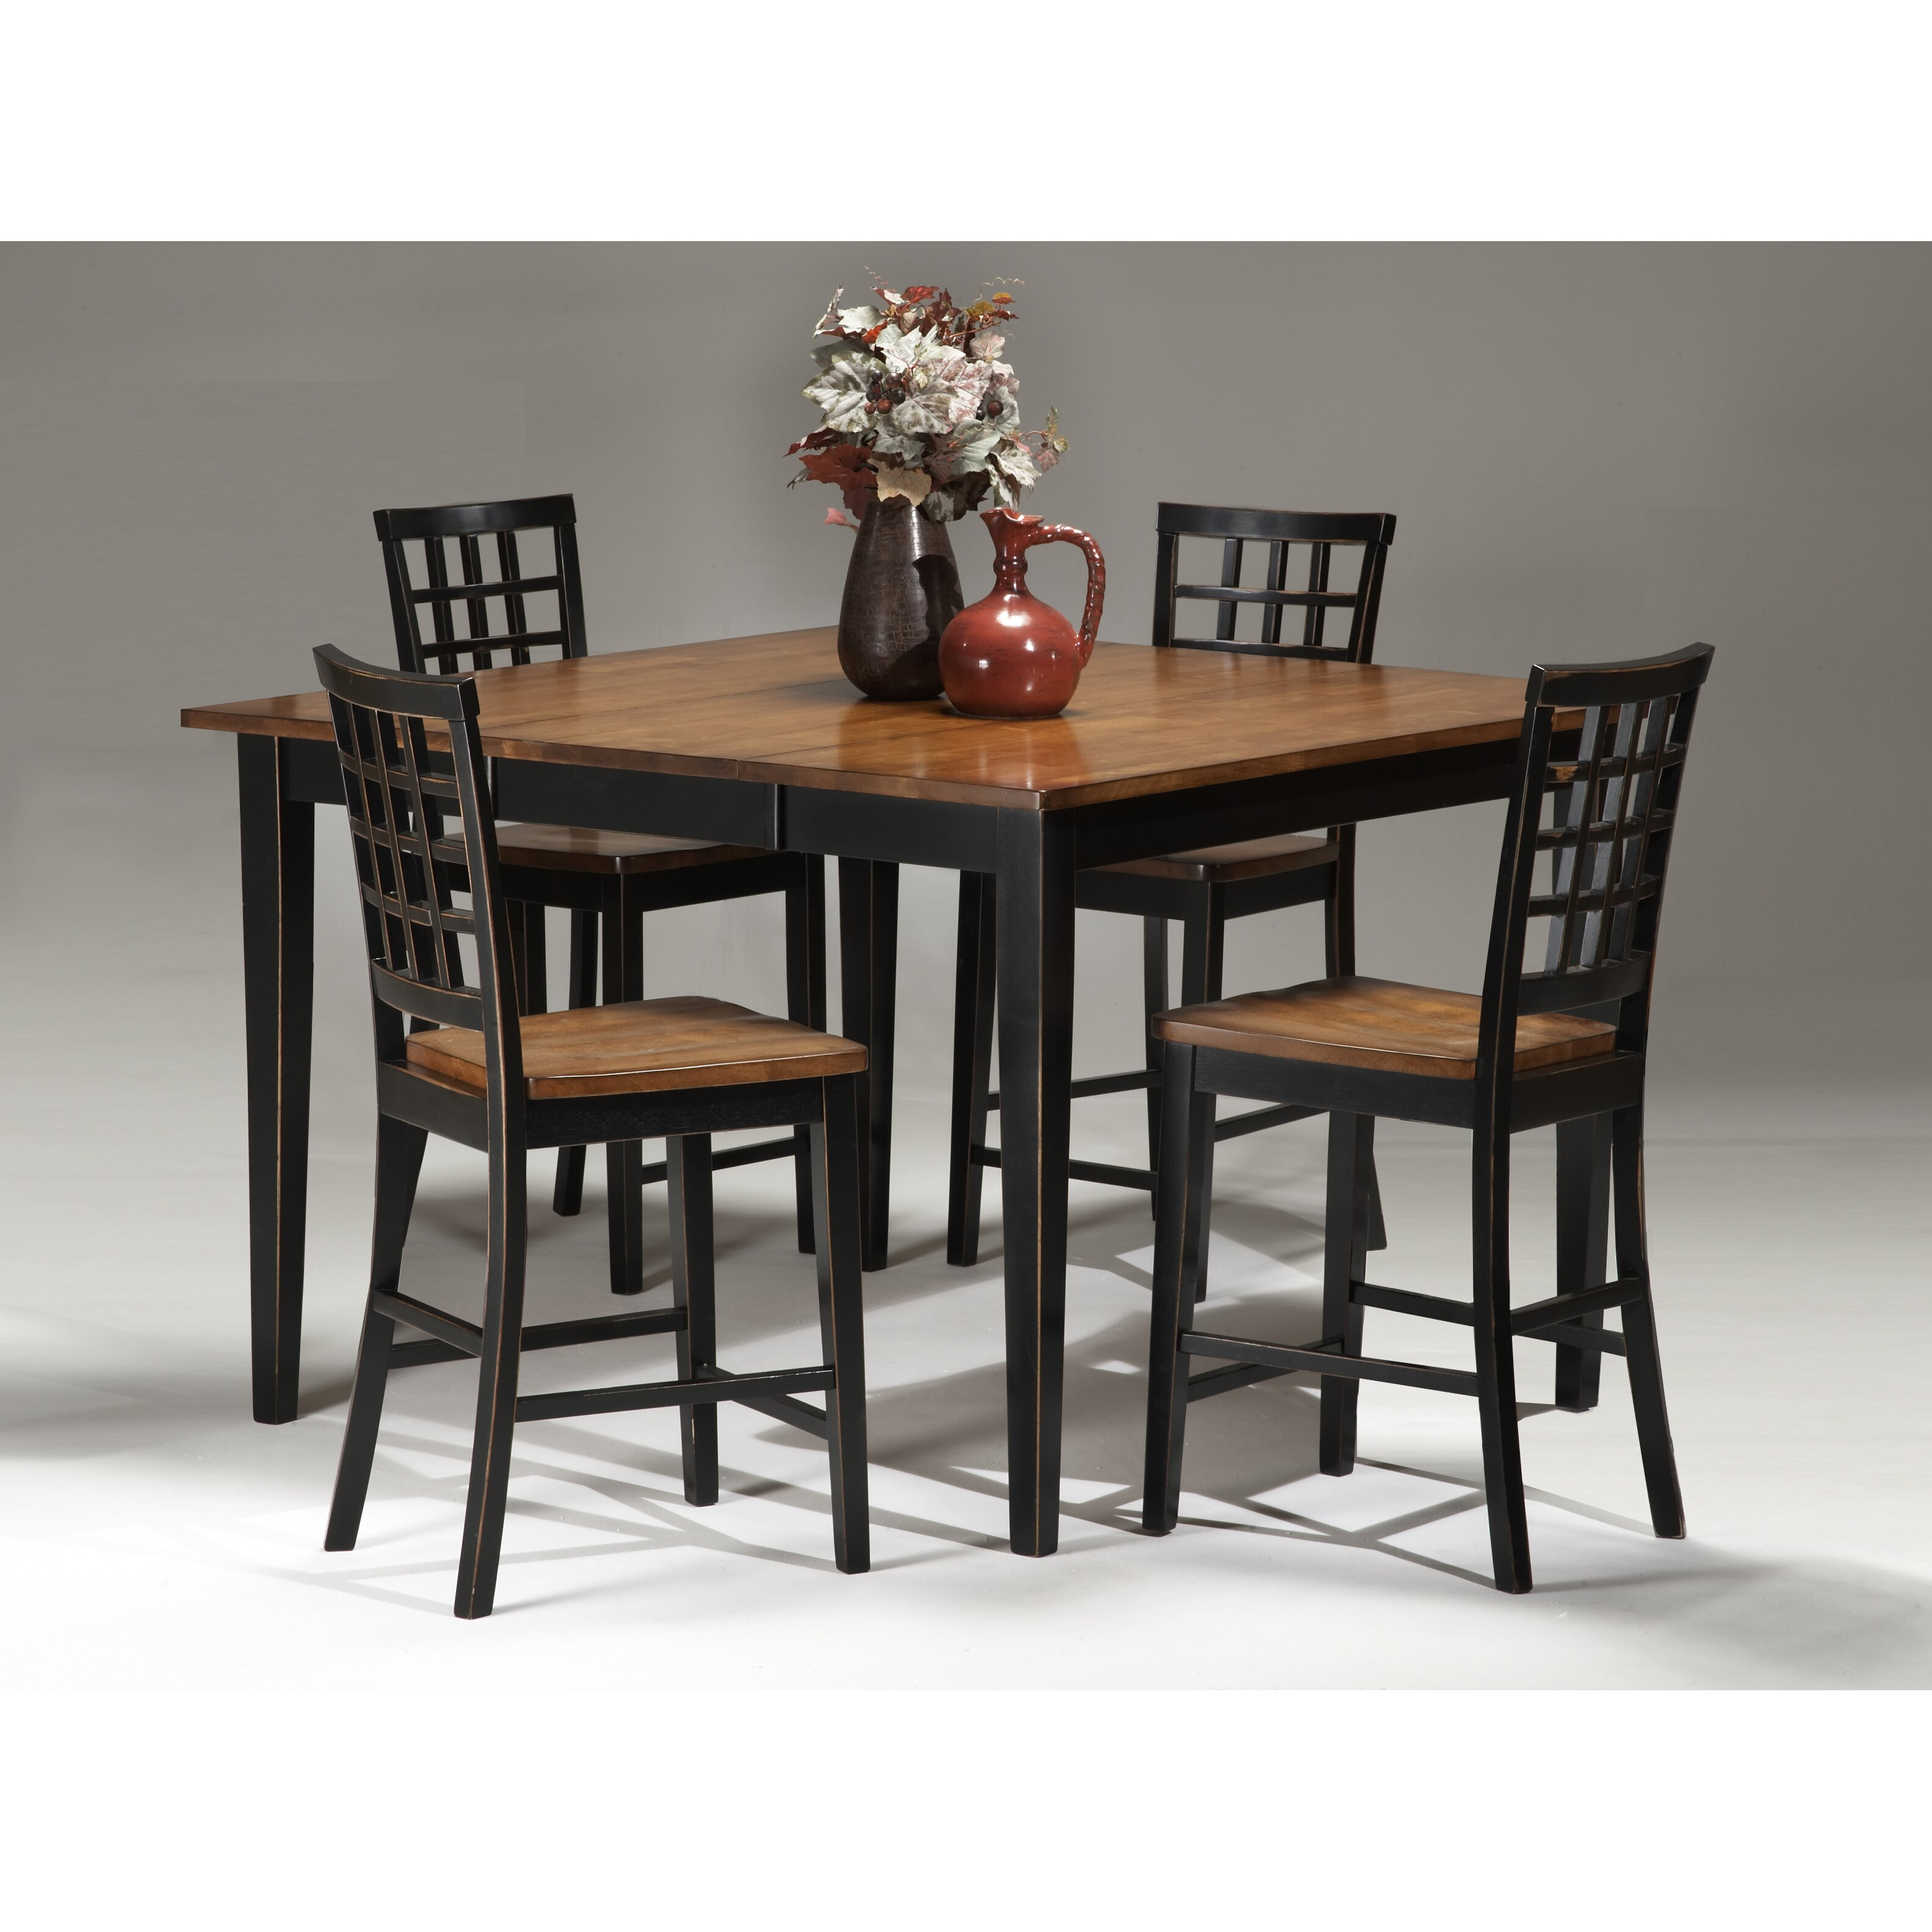 Counter Height Gathering Table Sets : Imagio Home by Intercon Arlington Counter Height Gathering Table